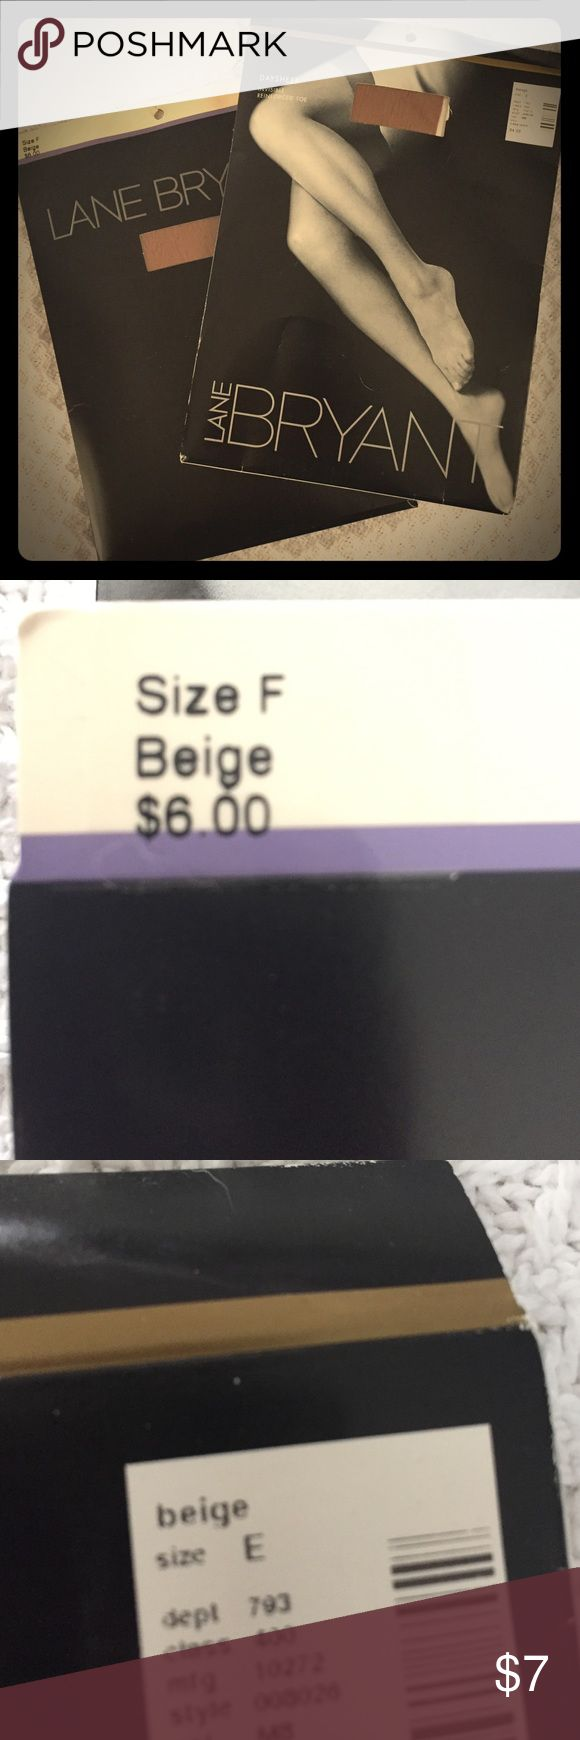 Lane Bryant Pantyhose - BRAND NEW IN PACKAGE Two Pair Lane Bryant pantyhose. Brand new in package.  Daysheer Control Top in Beige Size F and Daysheer Size E. Lane Bryant Accessories Hosiery & Socks